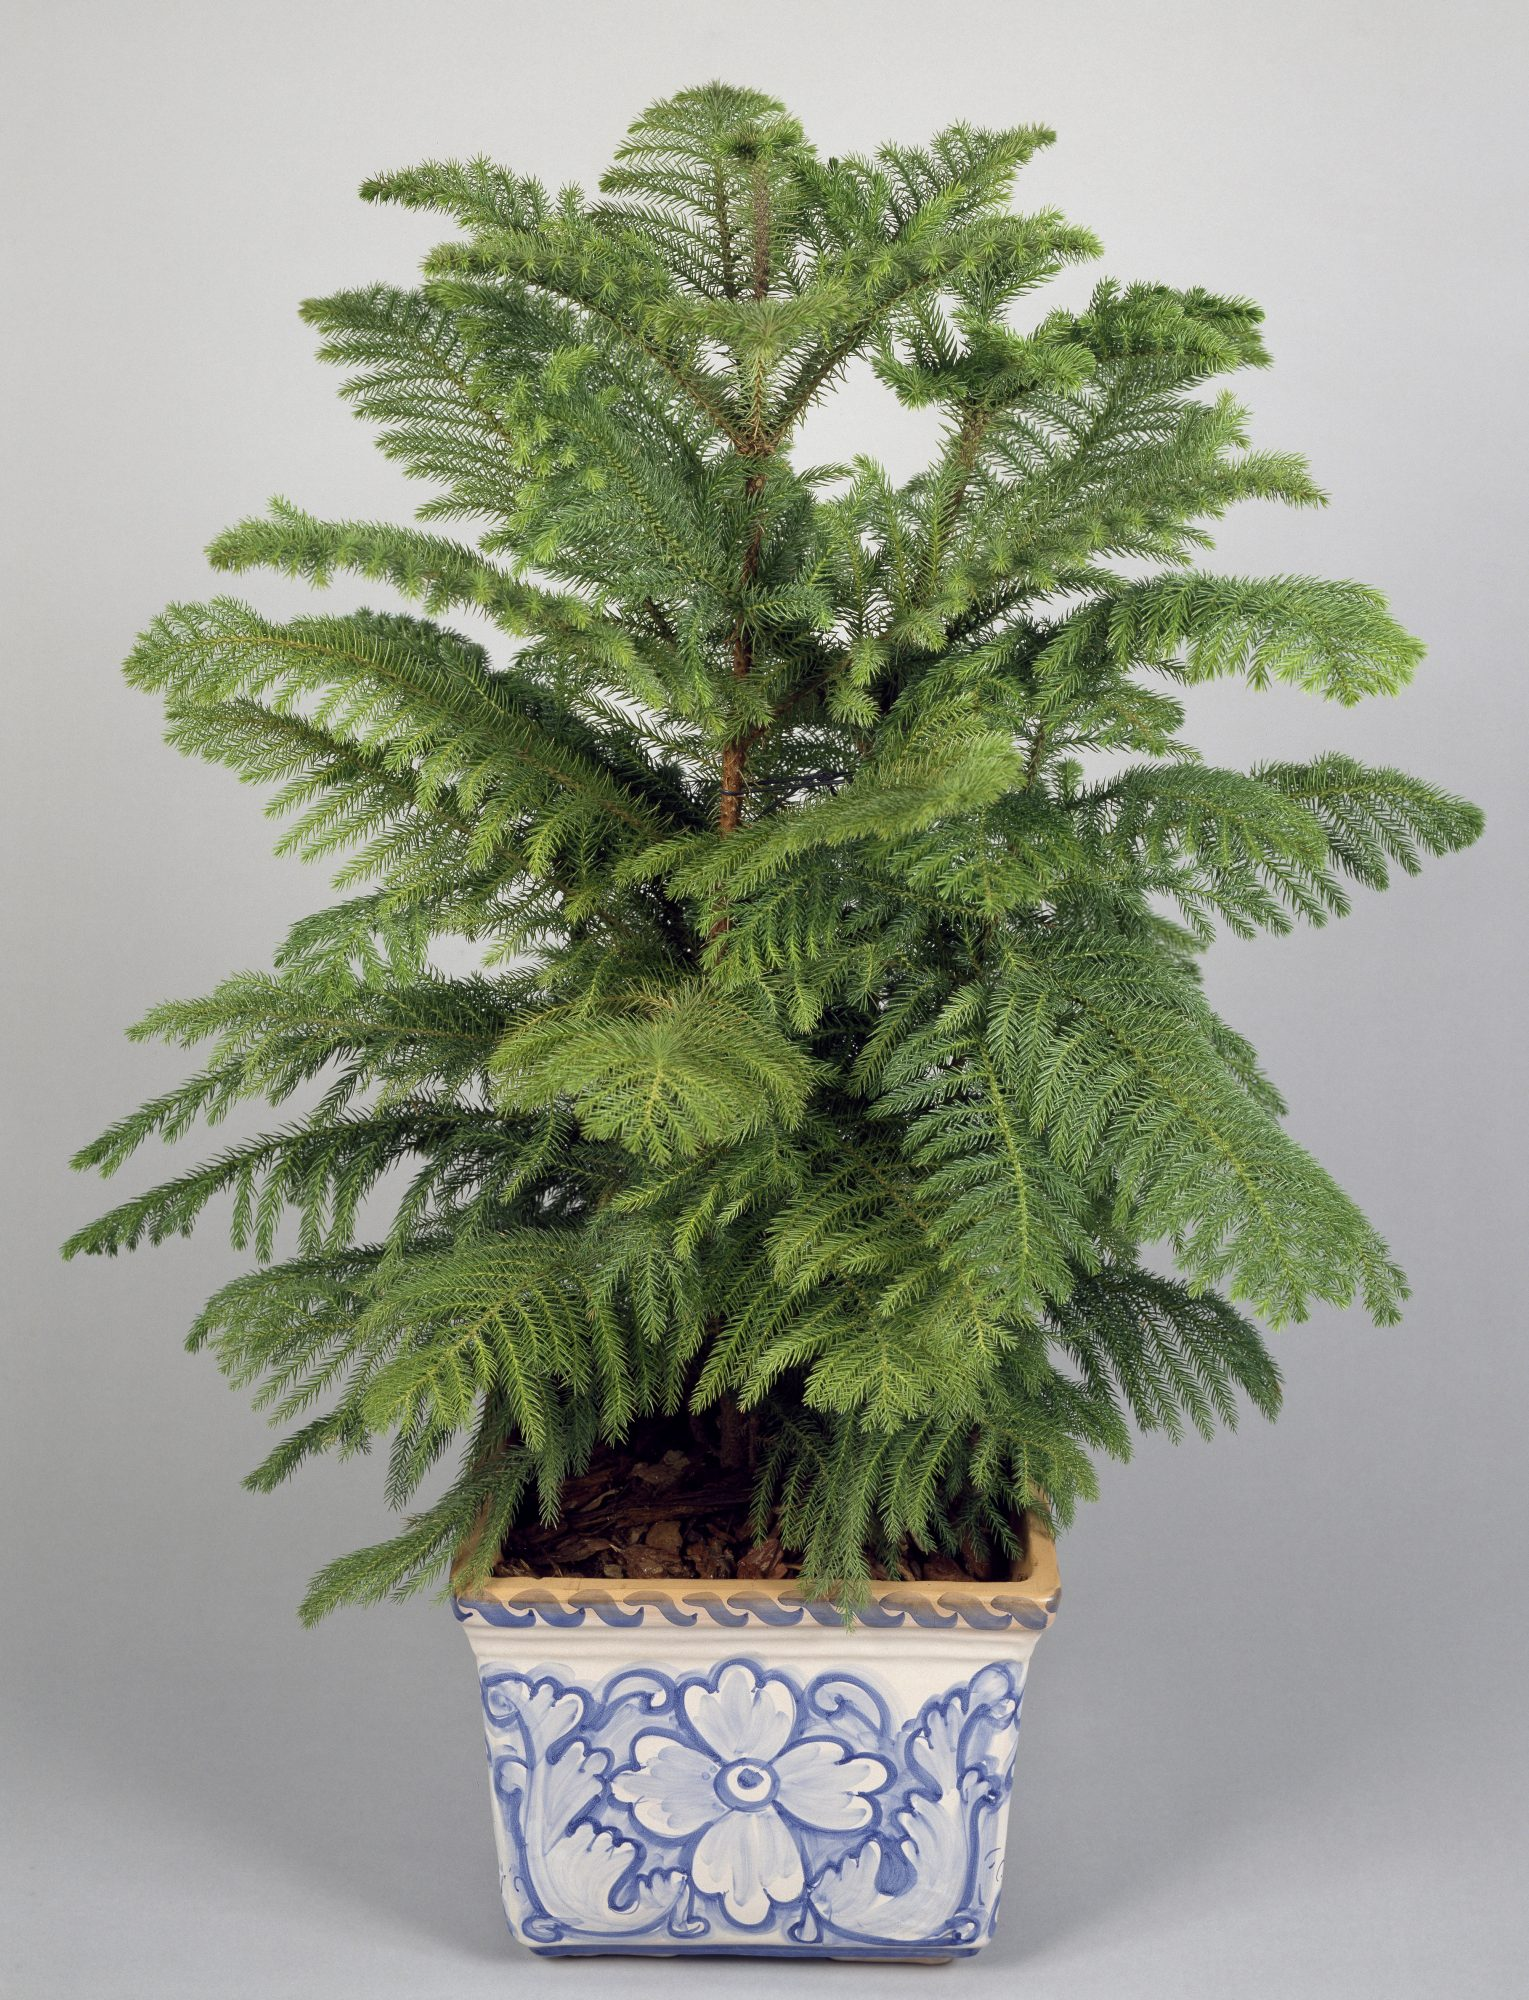 Dealing With Your Ginormous Norfolk Island Pine   Southern ... on norfolk pine plant, norfolk pine growth rate, norfolk pine care, norfolk pine watering,